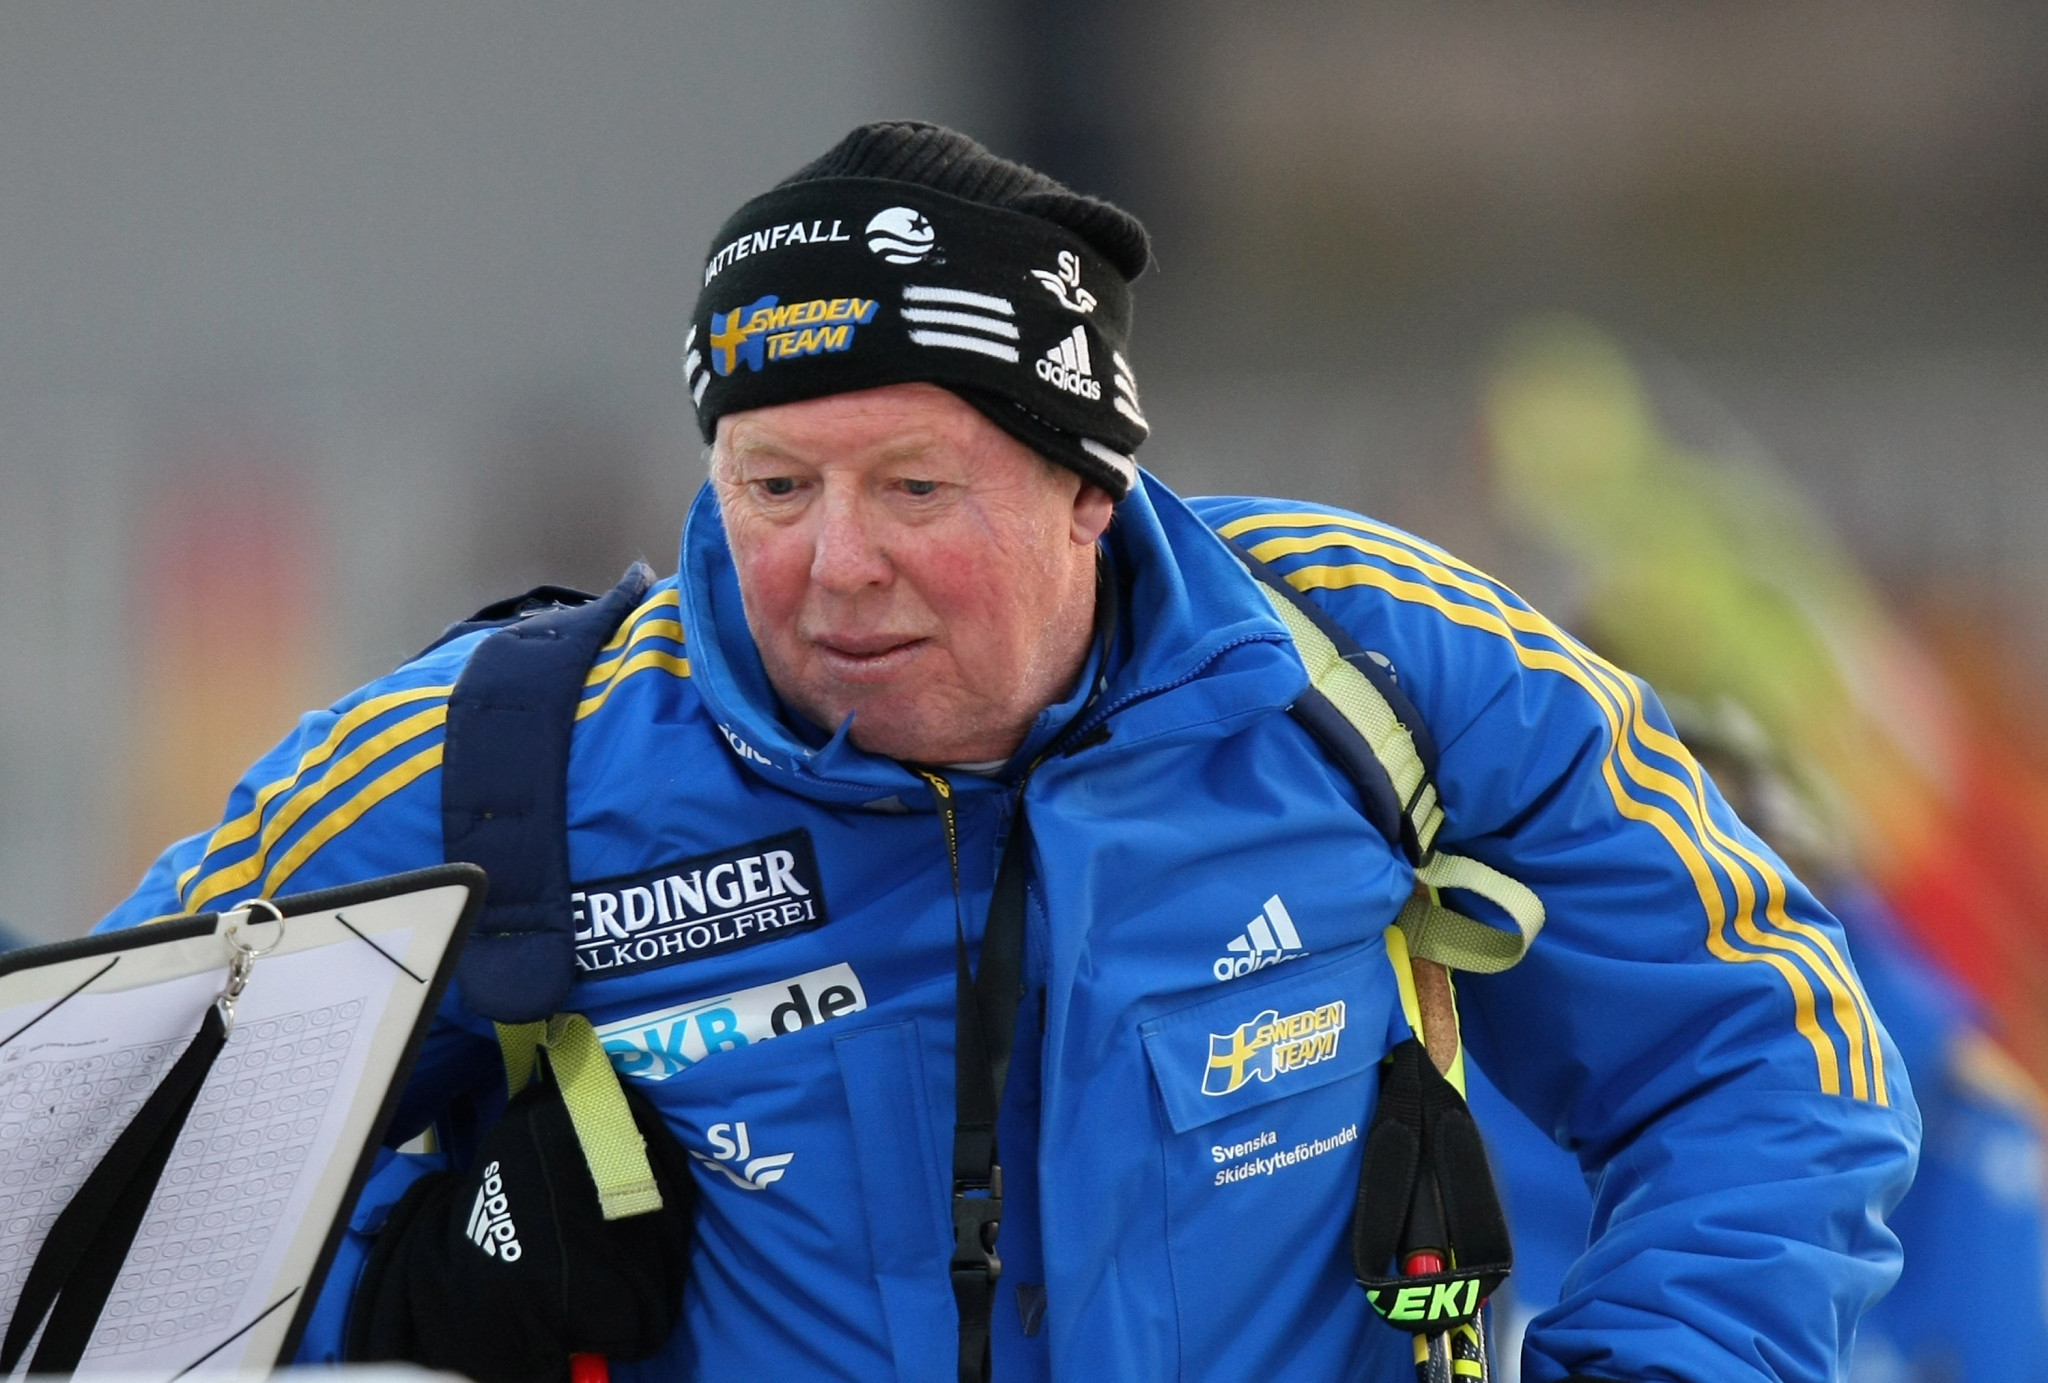 Swedish biathlon coach considering legal action after being denied accreditation for Pyeongchang 2018